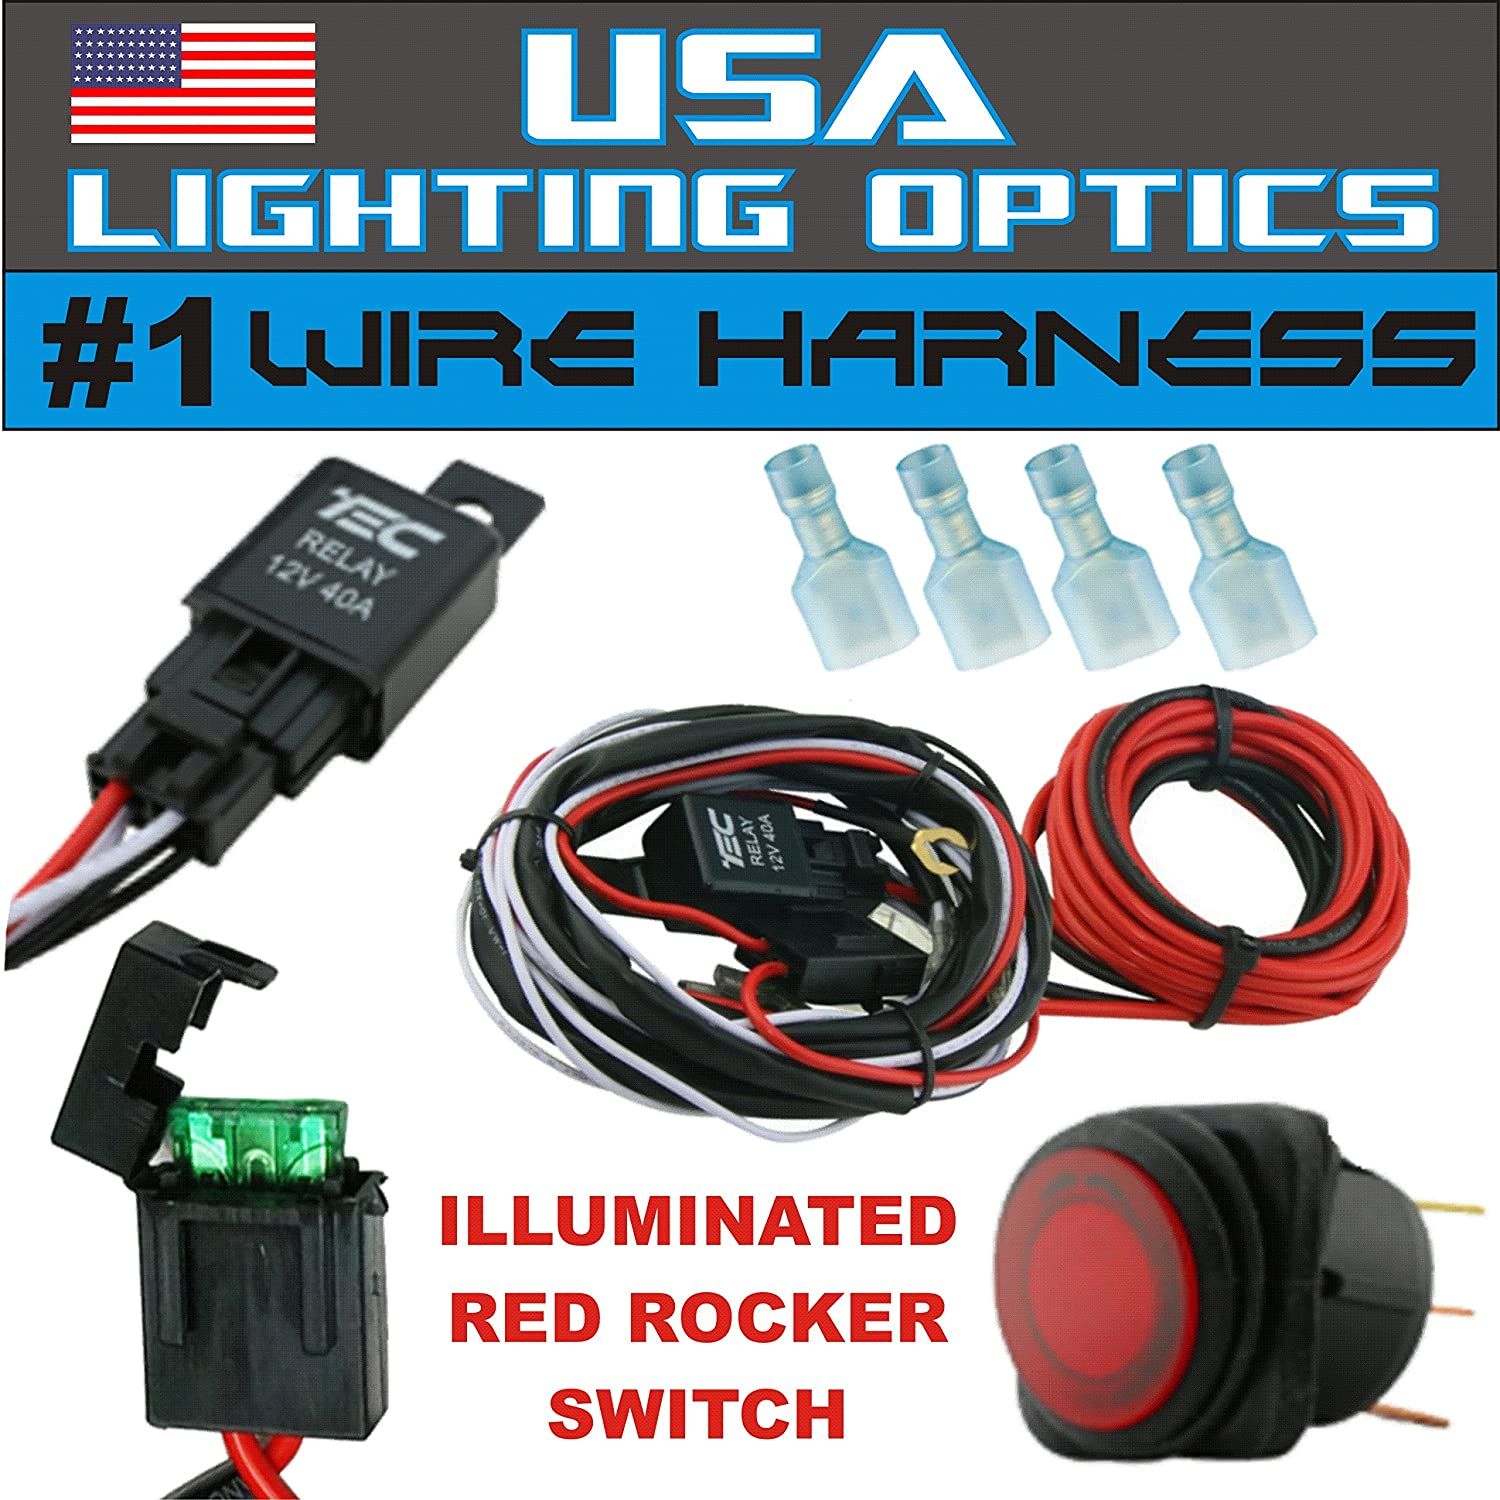 A1dMKlBH4WL._SL1500_ amazon com 1 40 amp universal wiring harness for off road led off road wiring harness at mifinder.co